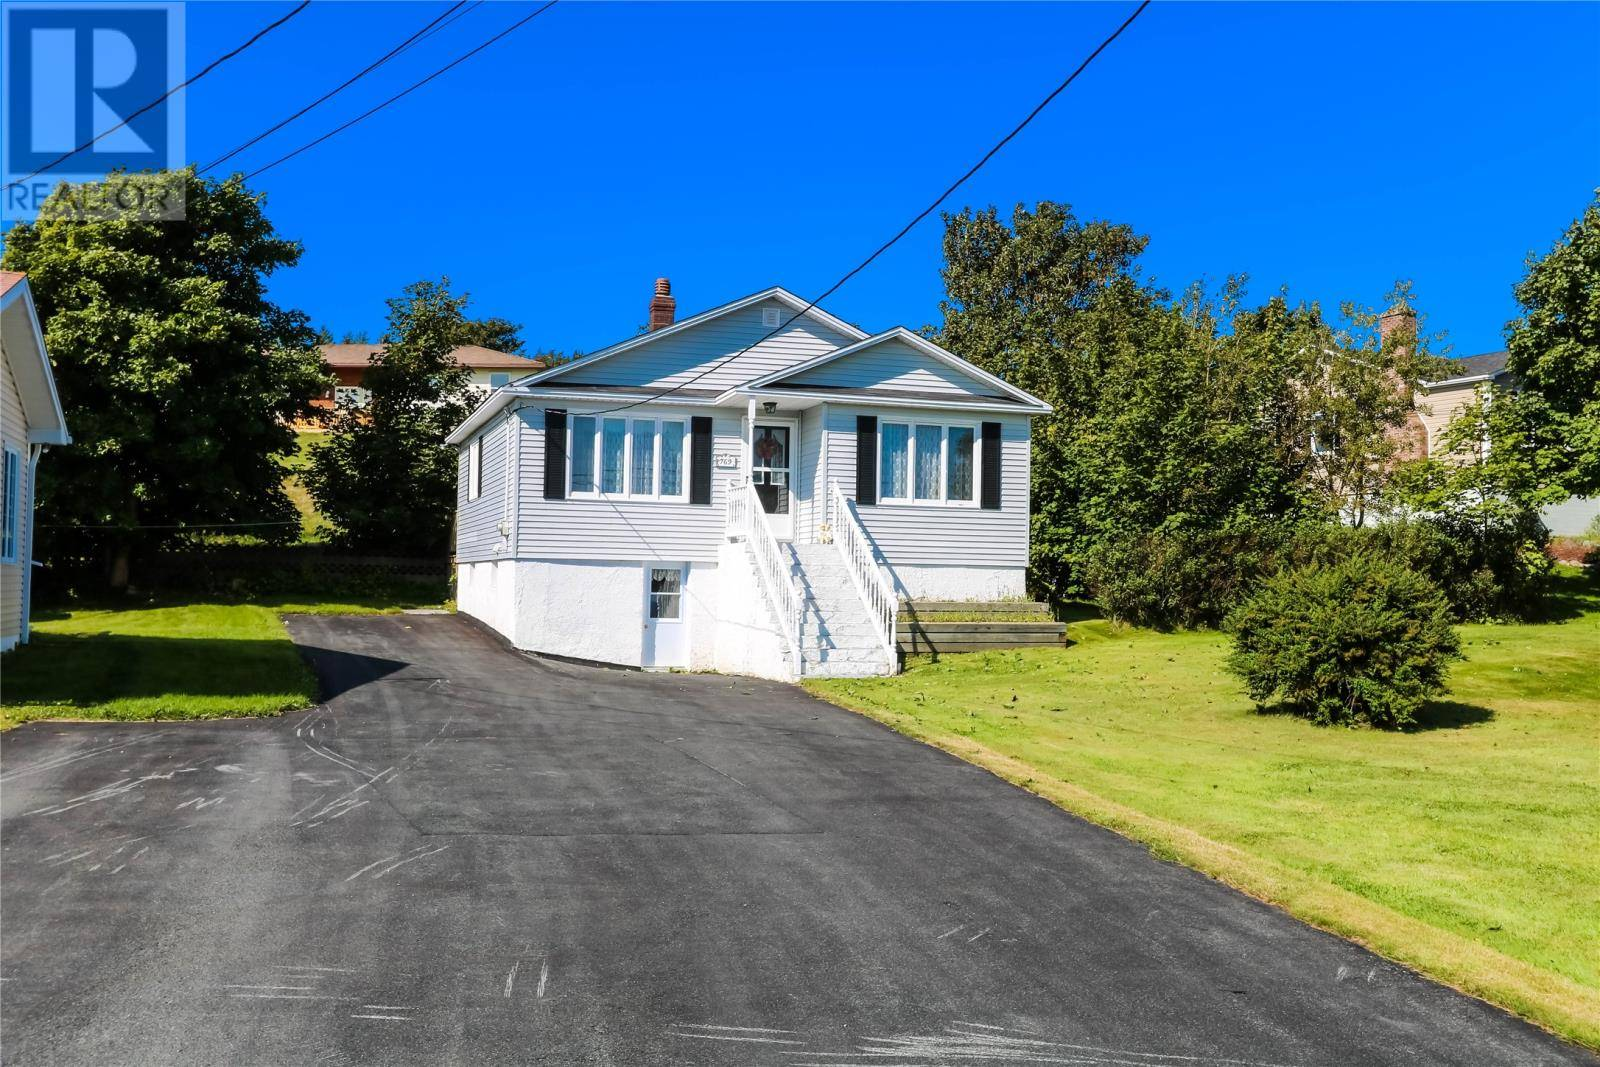 House for sale at 769 Main Rd Pouch Cove Newfoundland - MLS: 1212927